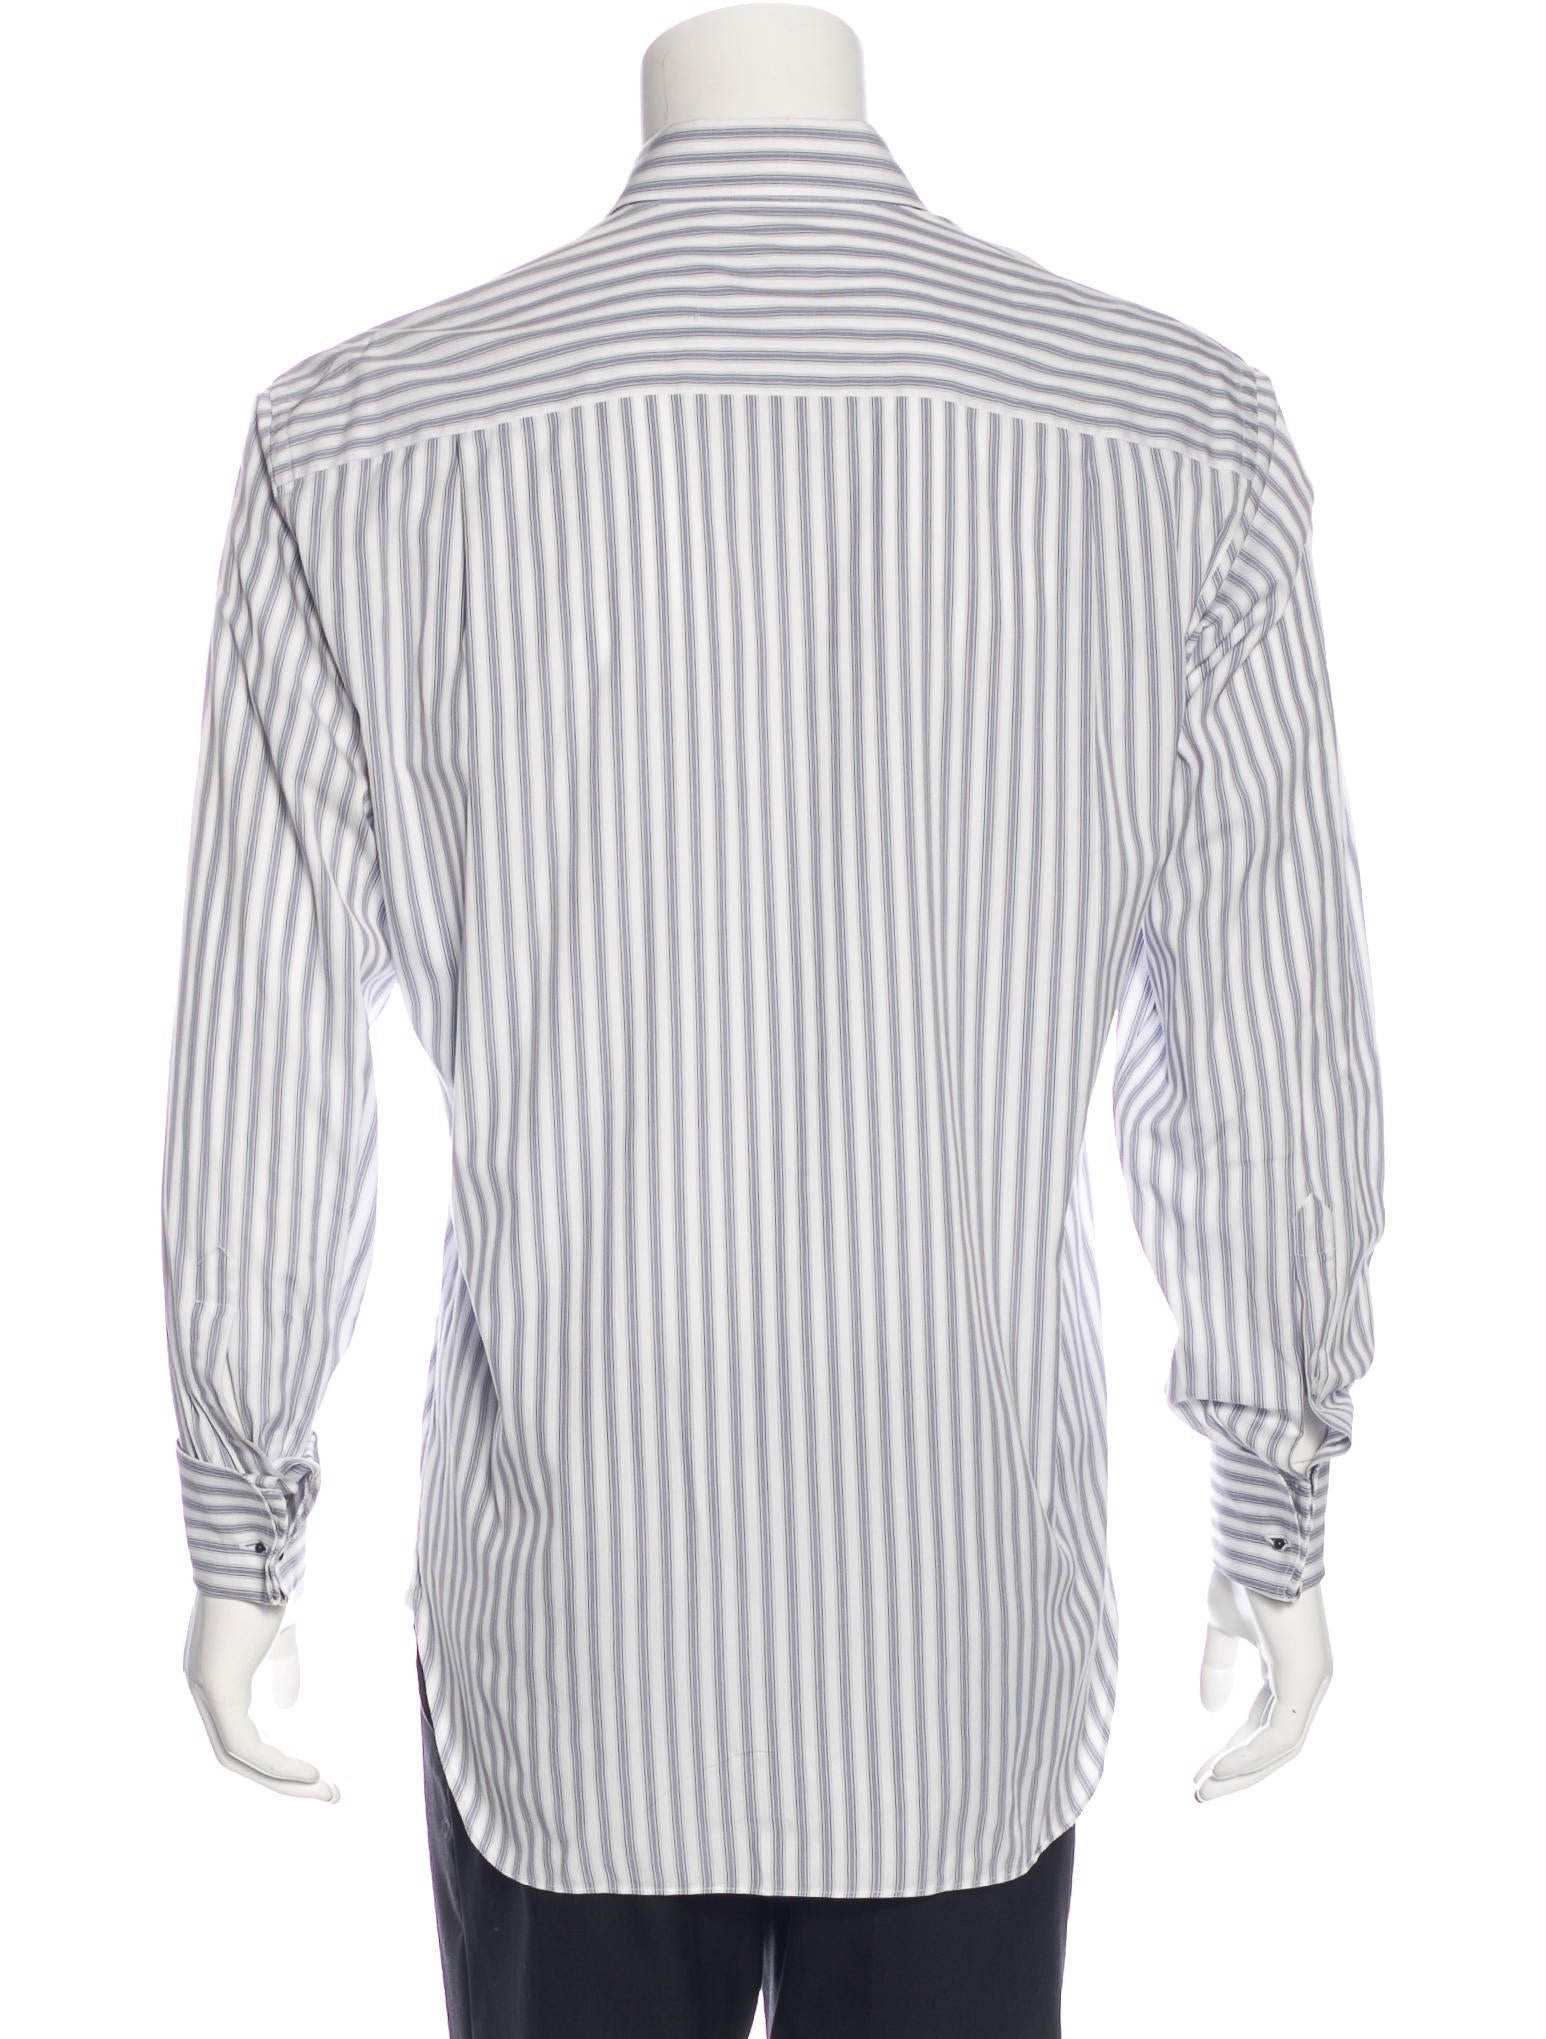 ermenegildo zegna striped french cuff shirt clothing. Black Bedroom Furniture Sets. Home Design Ideas